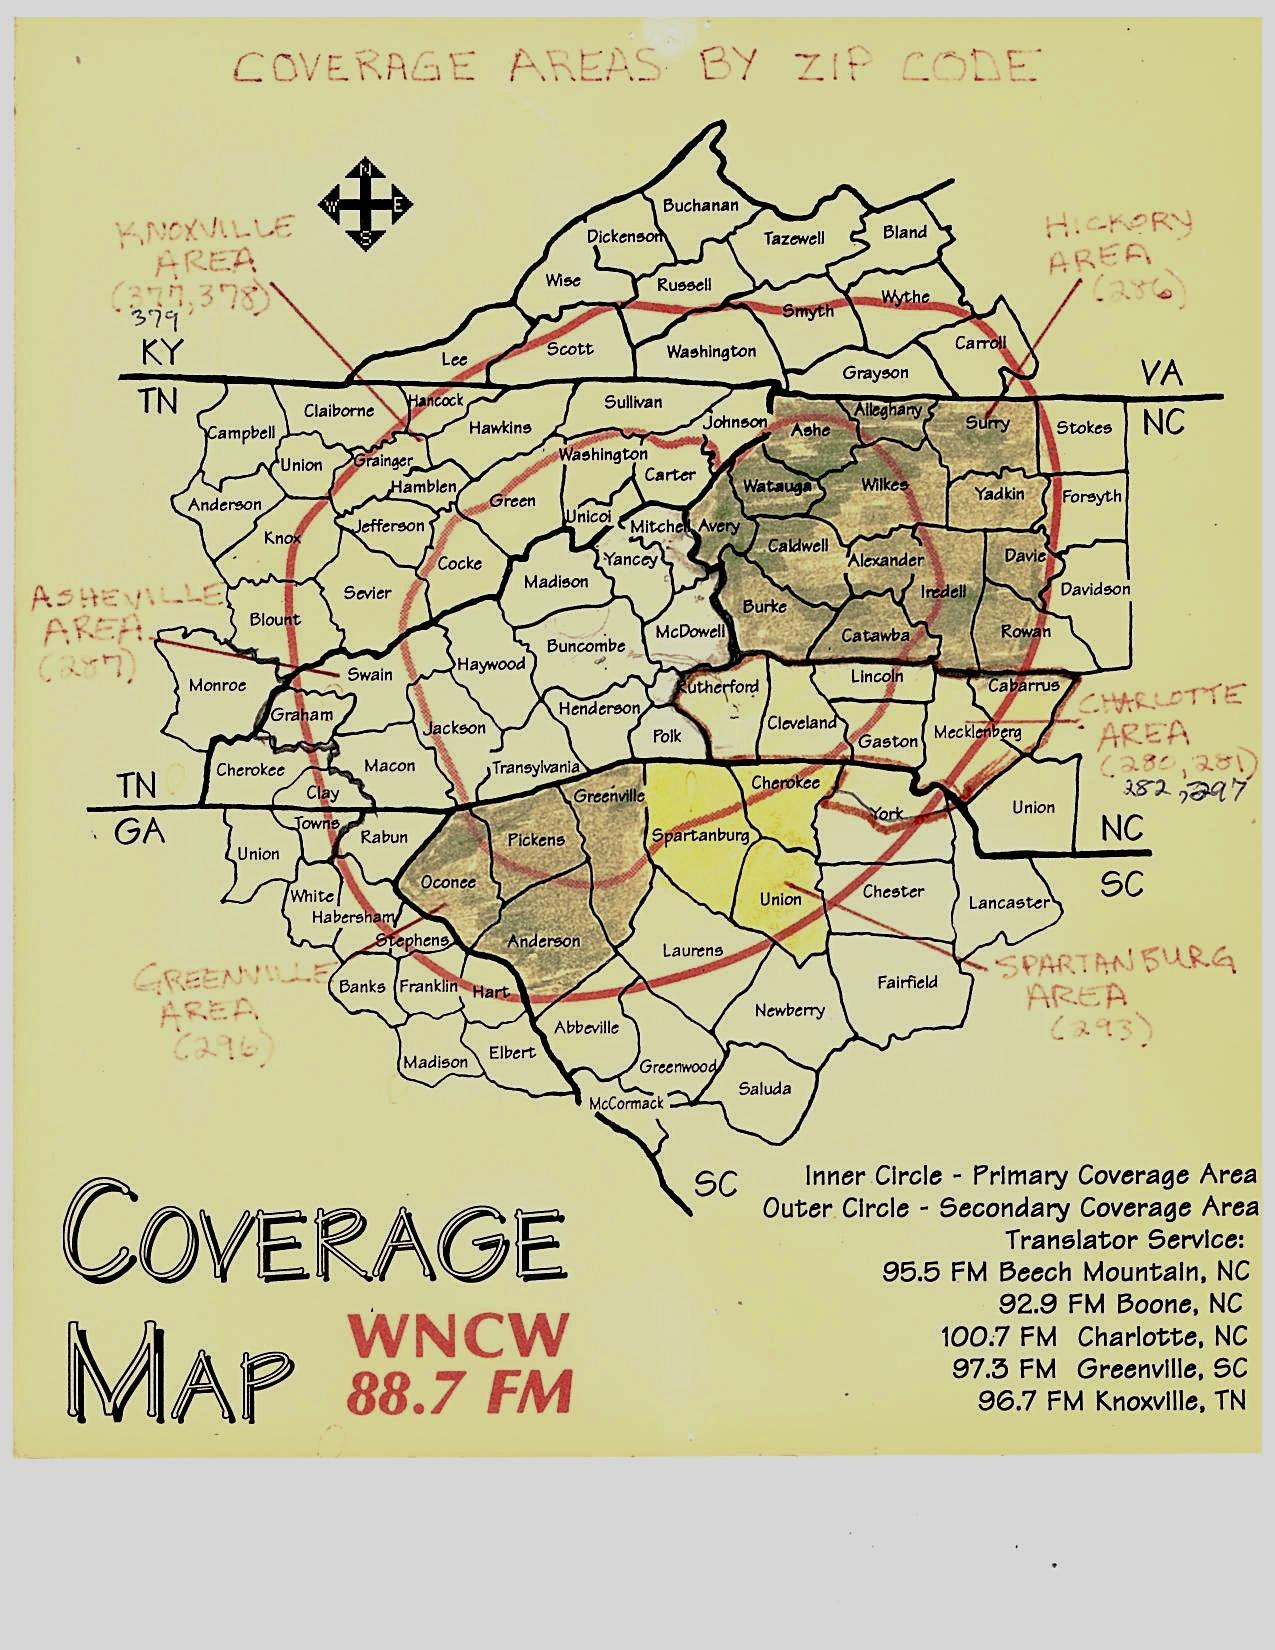 Spindale Nc Map.History Of Wncw 88 7 Fm In Spindale Nc Wncw